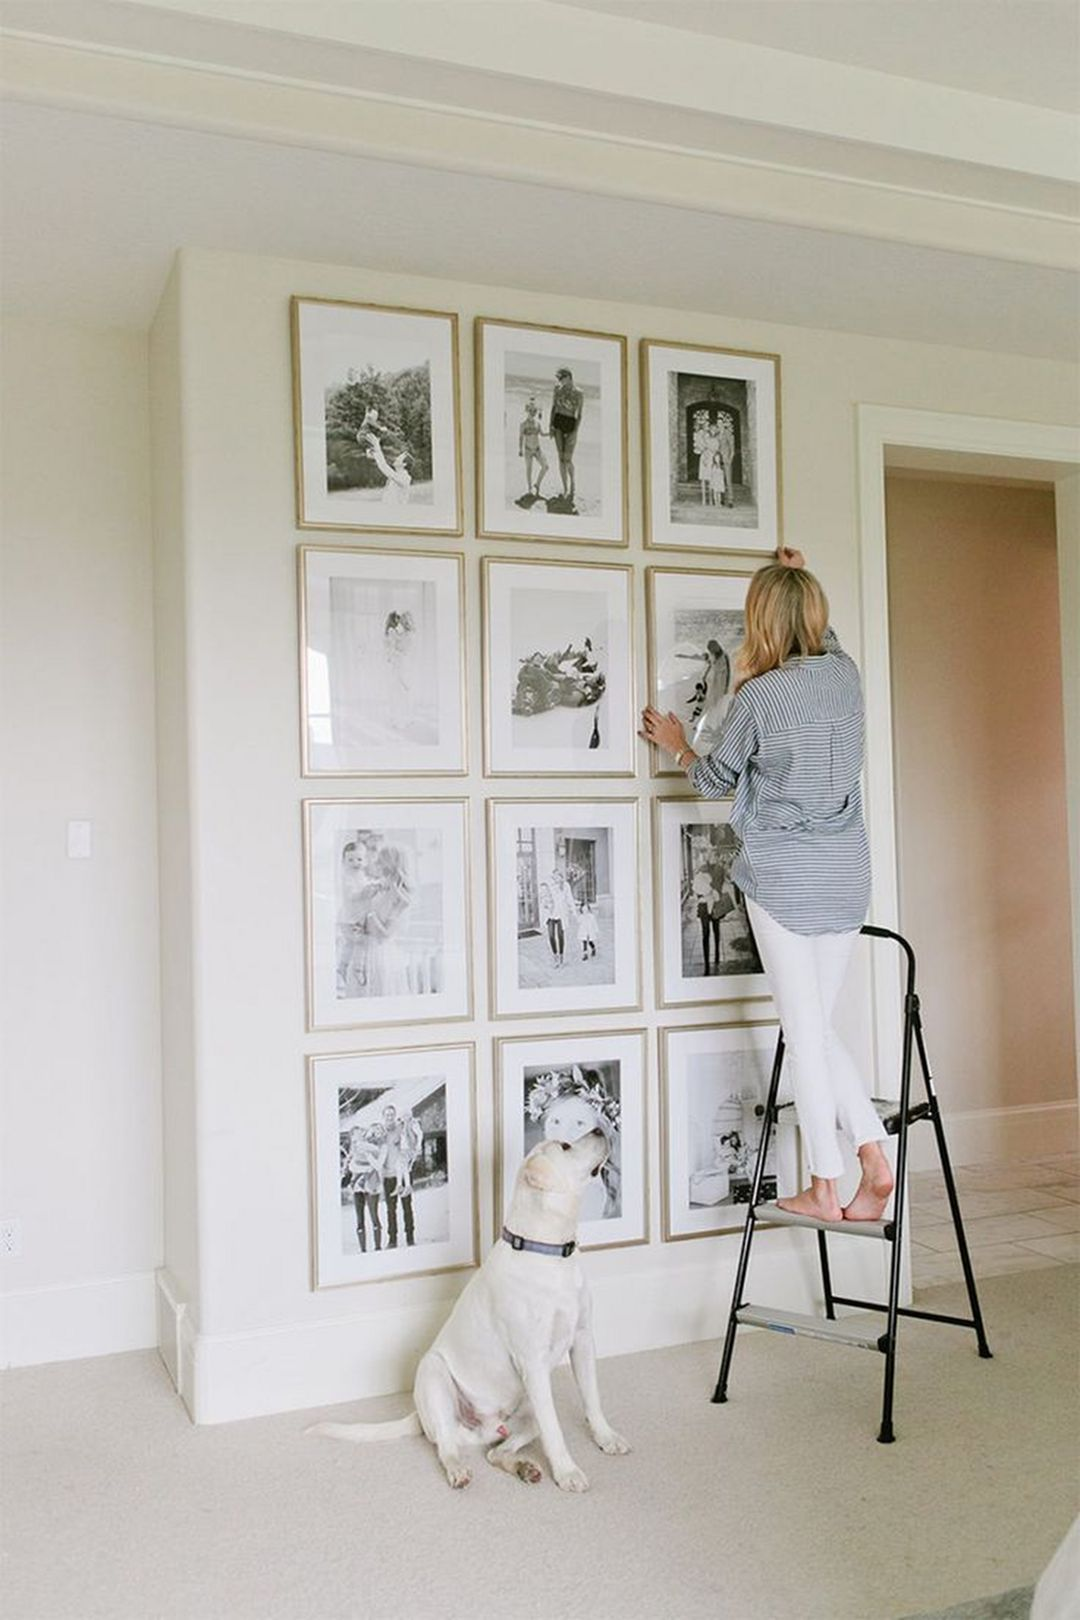 25+ Easy Way To Creating Gallery Wall Home Decor For Your Home Wall Decoration Easyhomedecor - Baby Shirts - Home Decor